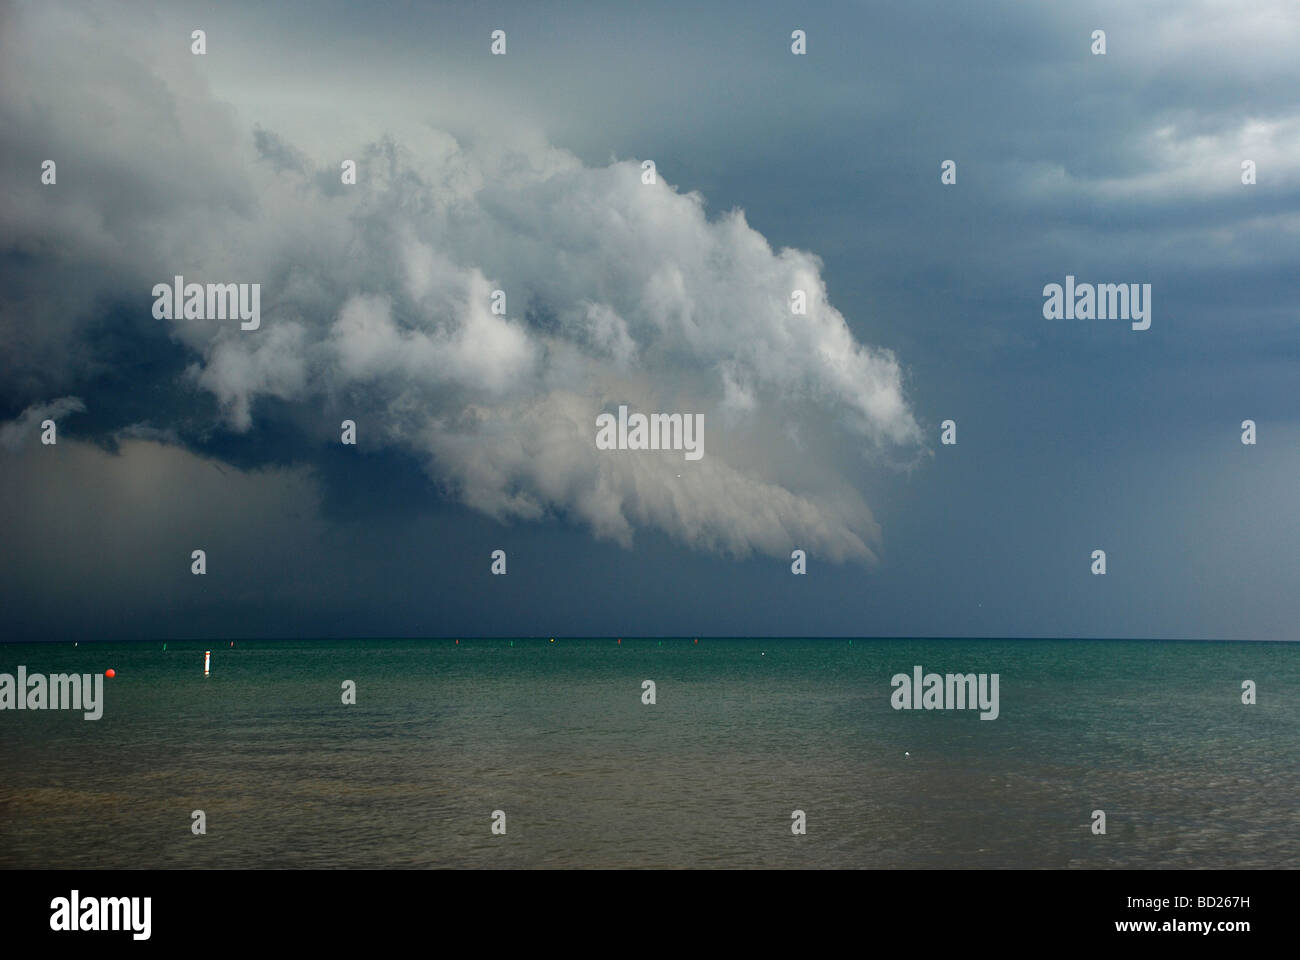 Storm Clouds over lake Michigan as seen from Greenwood Beach in Evanston, IL - Stock Image